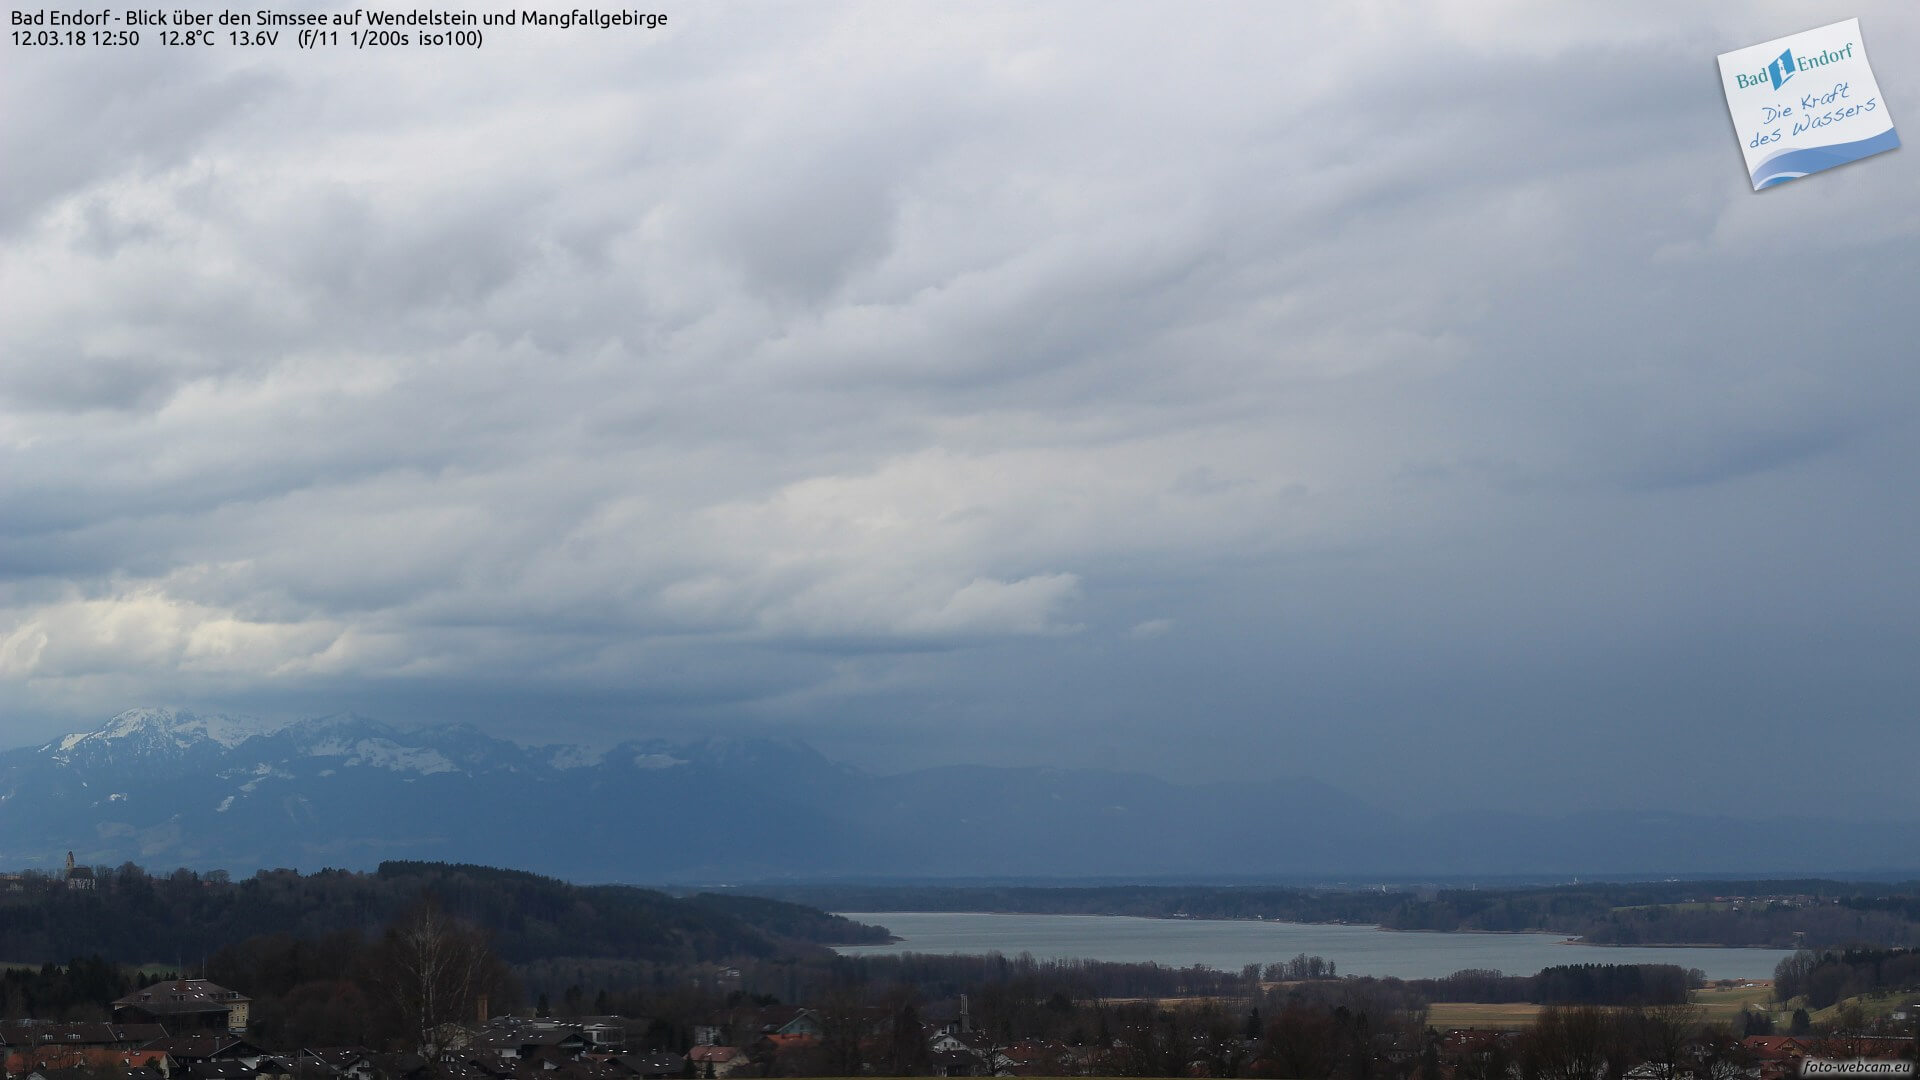 Gewitter am Alpenrand. © foto-webcam.eu